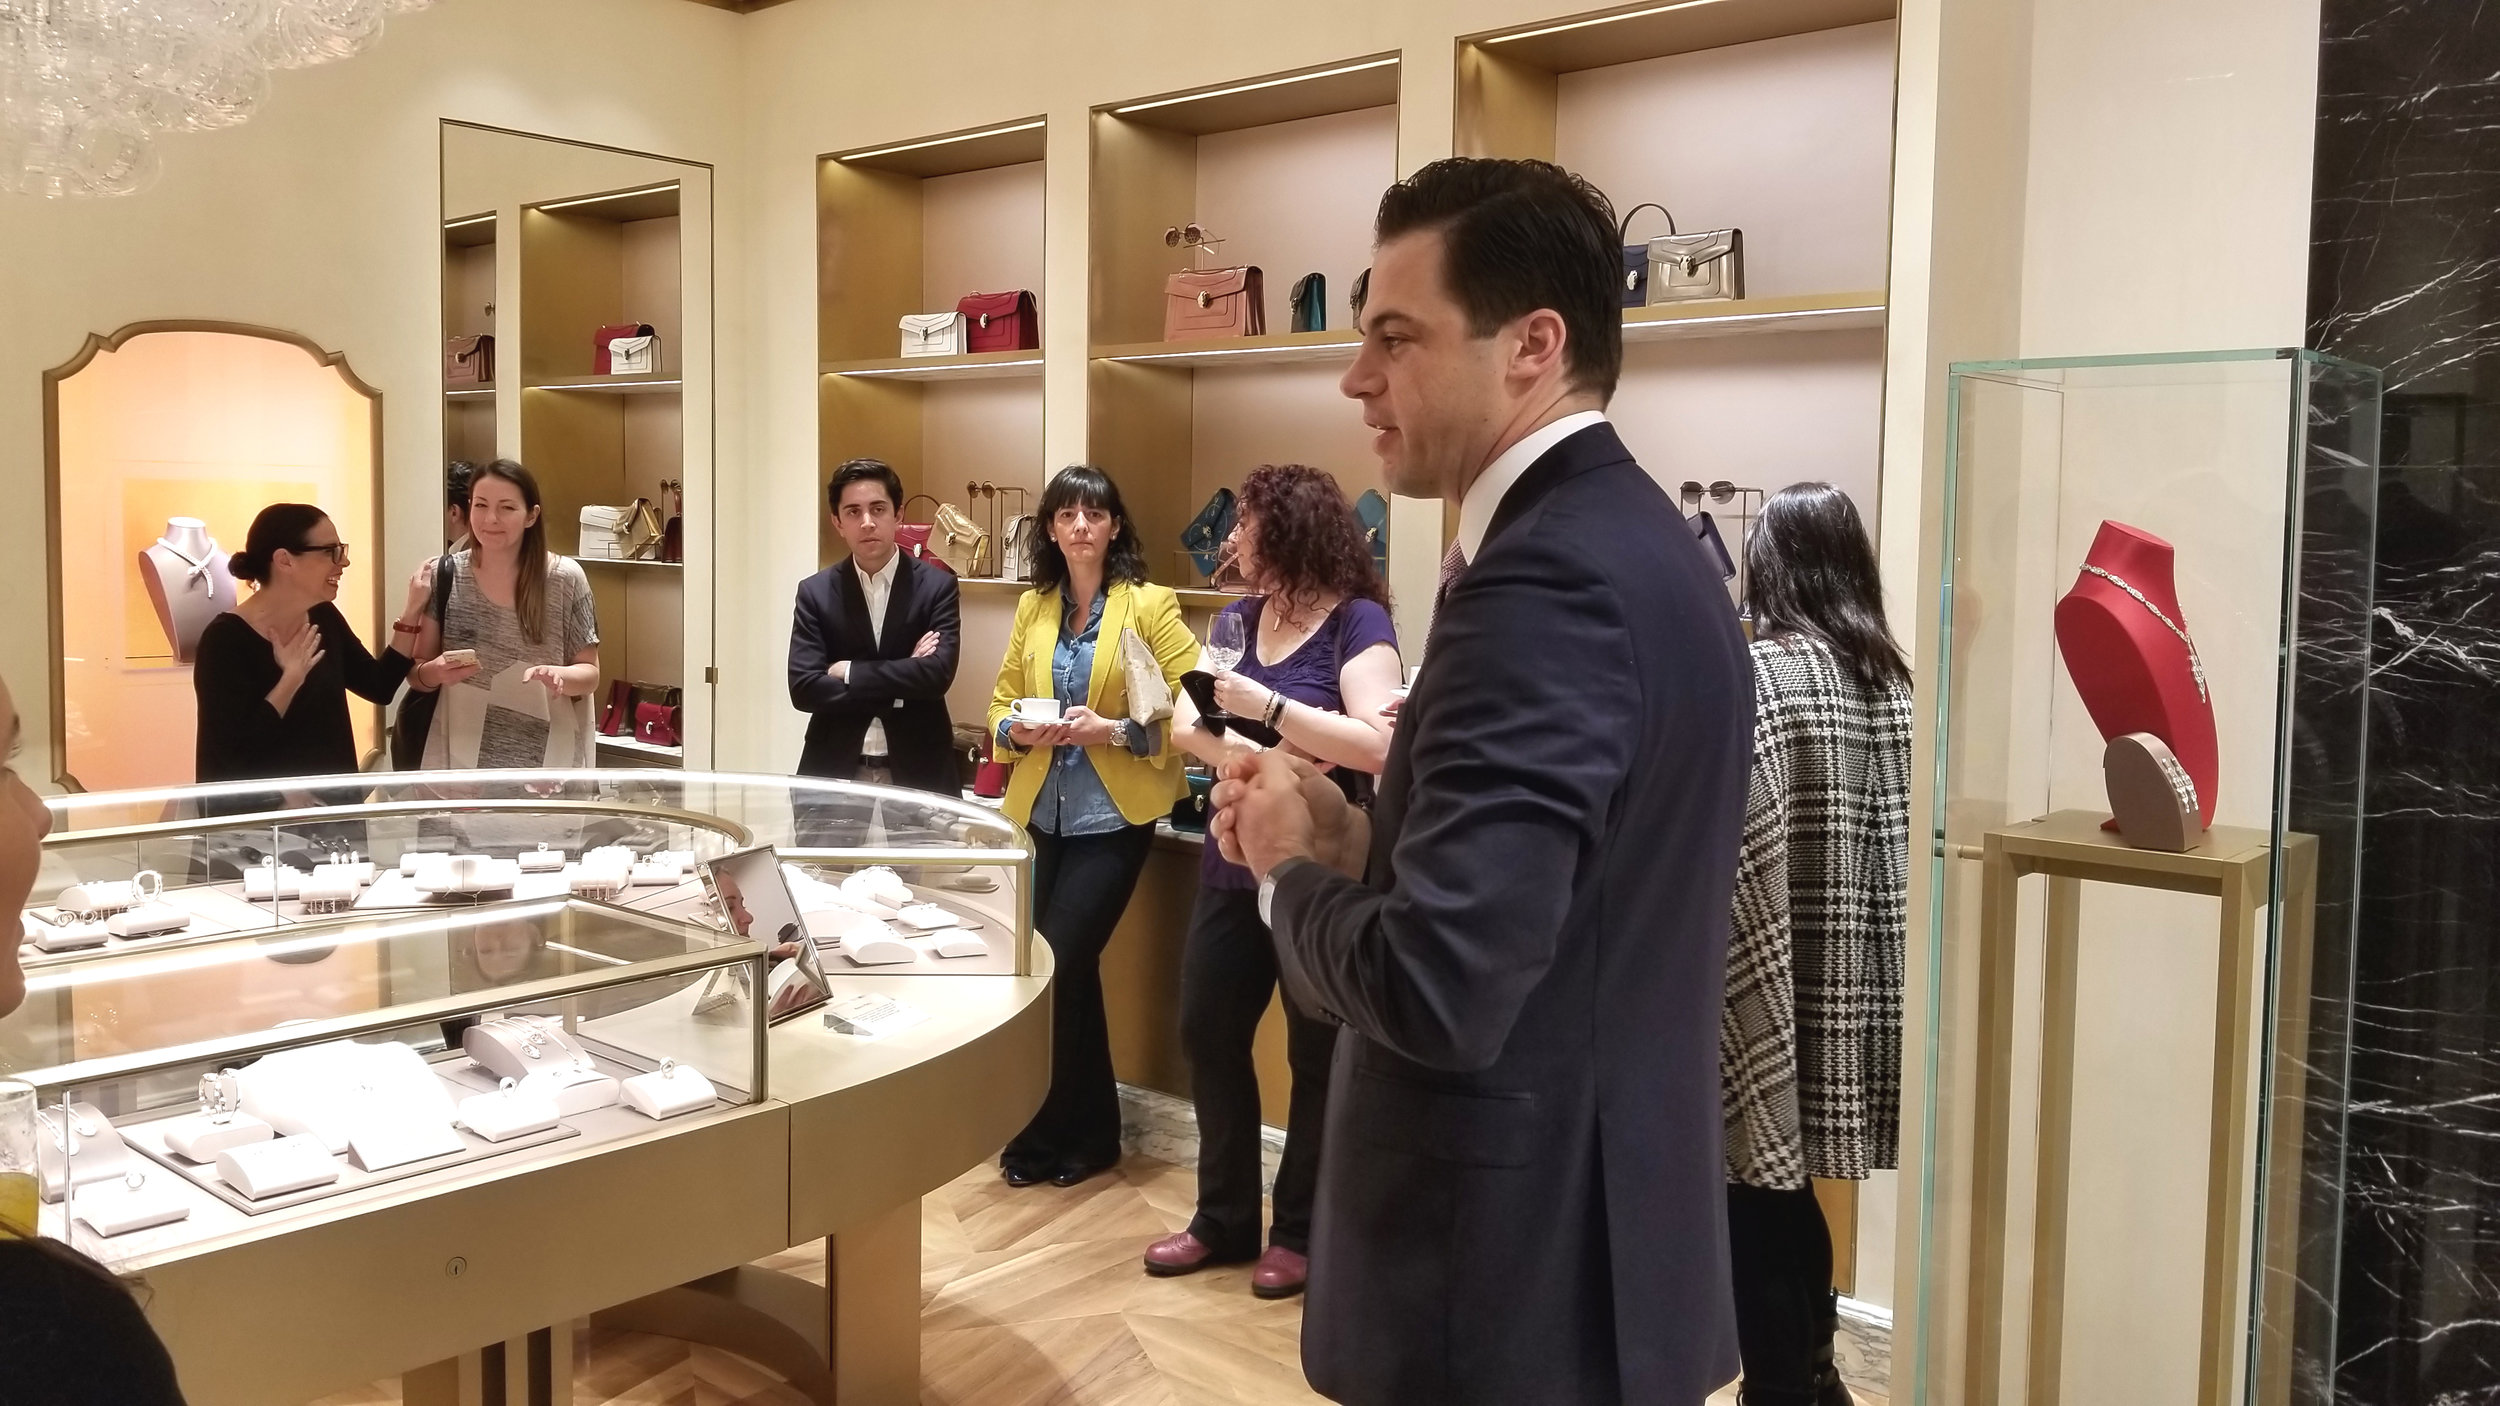 [Daniel Paltridge, President of Bulgari North America, speaks to media at the opening]